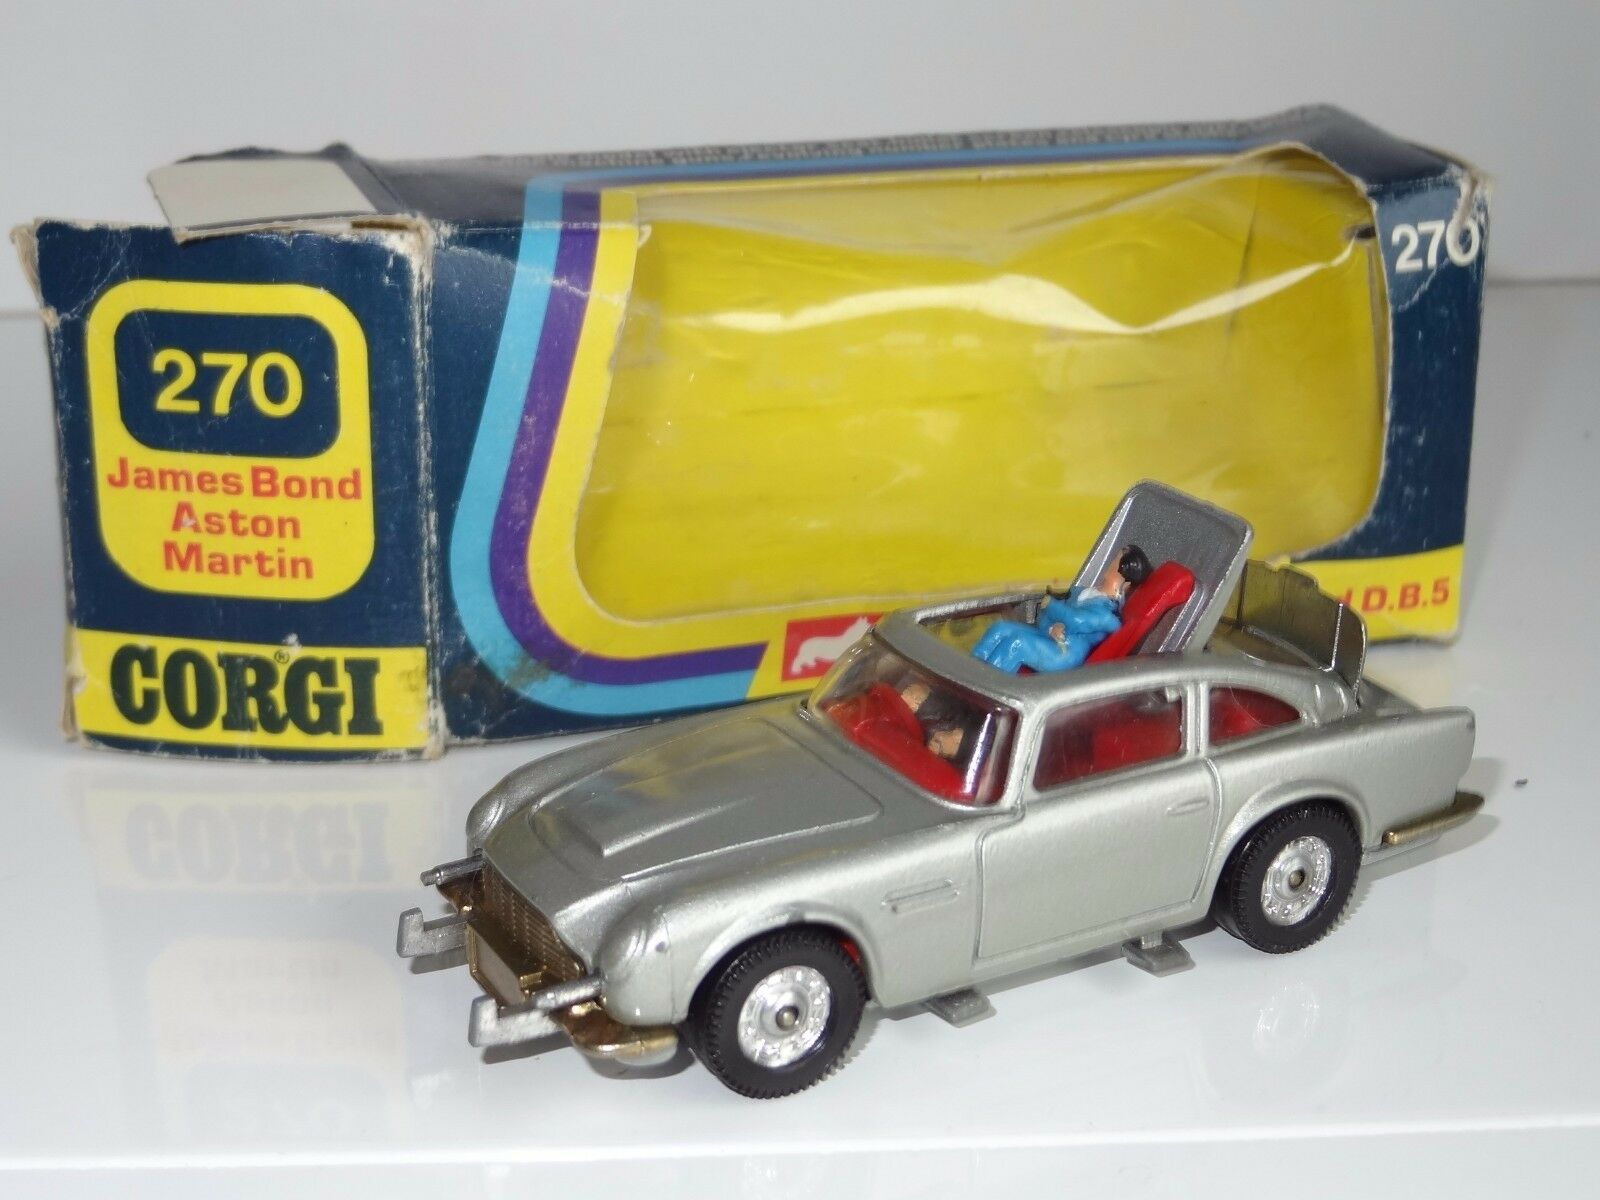 (c) corgi whizwheels JAMES BOND 007 ASTON MARTIN DB5 - 270